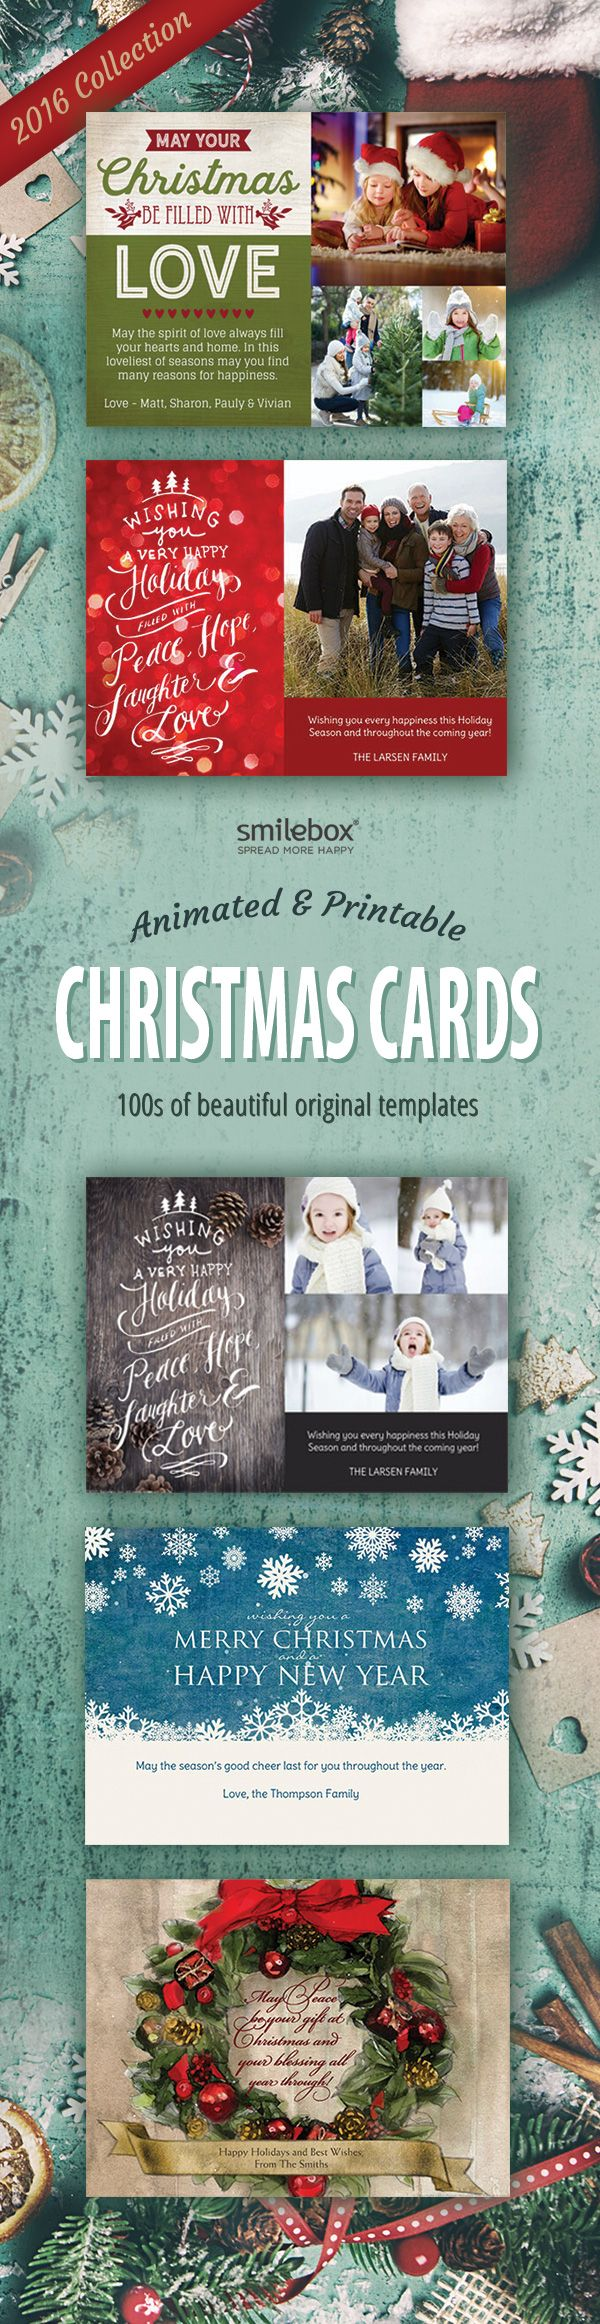 Personalize festive and fun Christmas cards to share with family and friends!  Choose Your favorite template, Add your pics and text, easily print or send with music and animation.